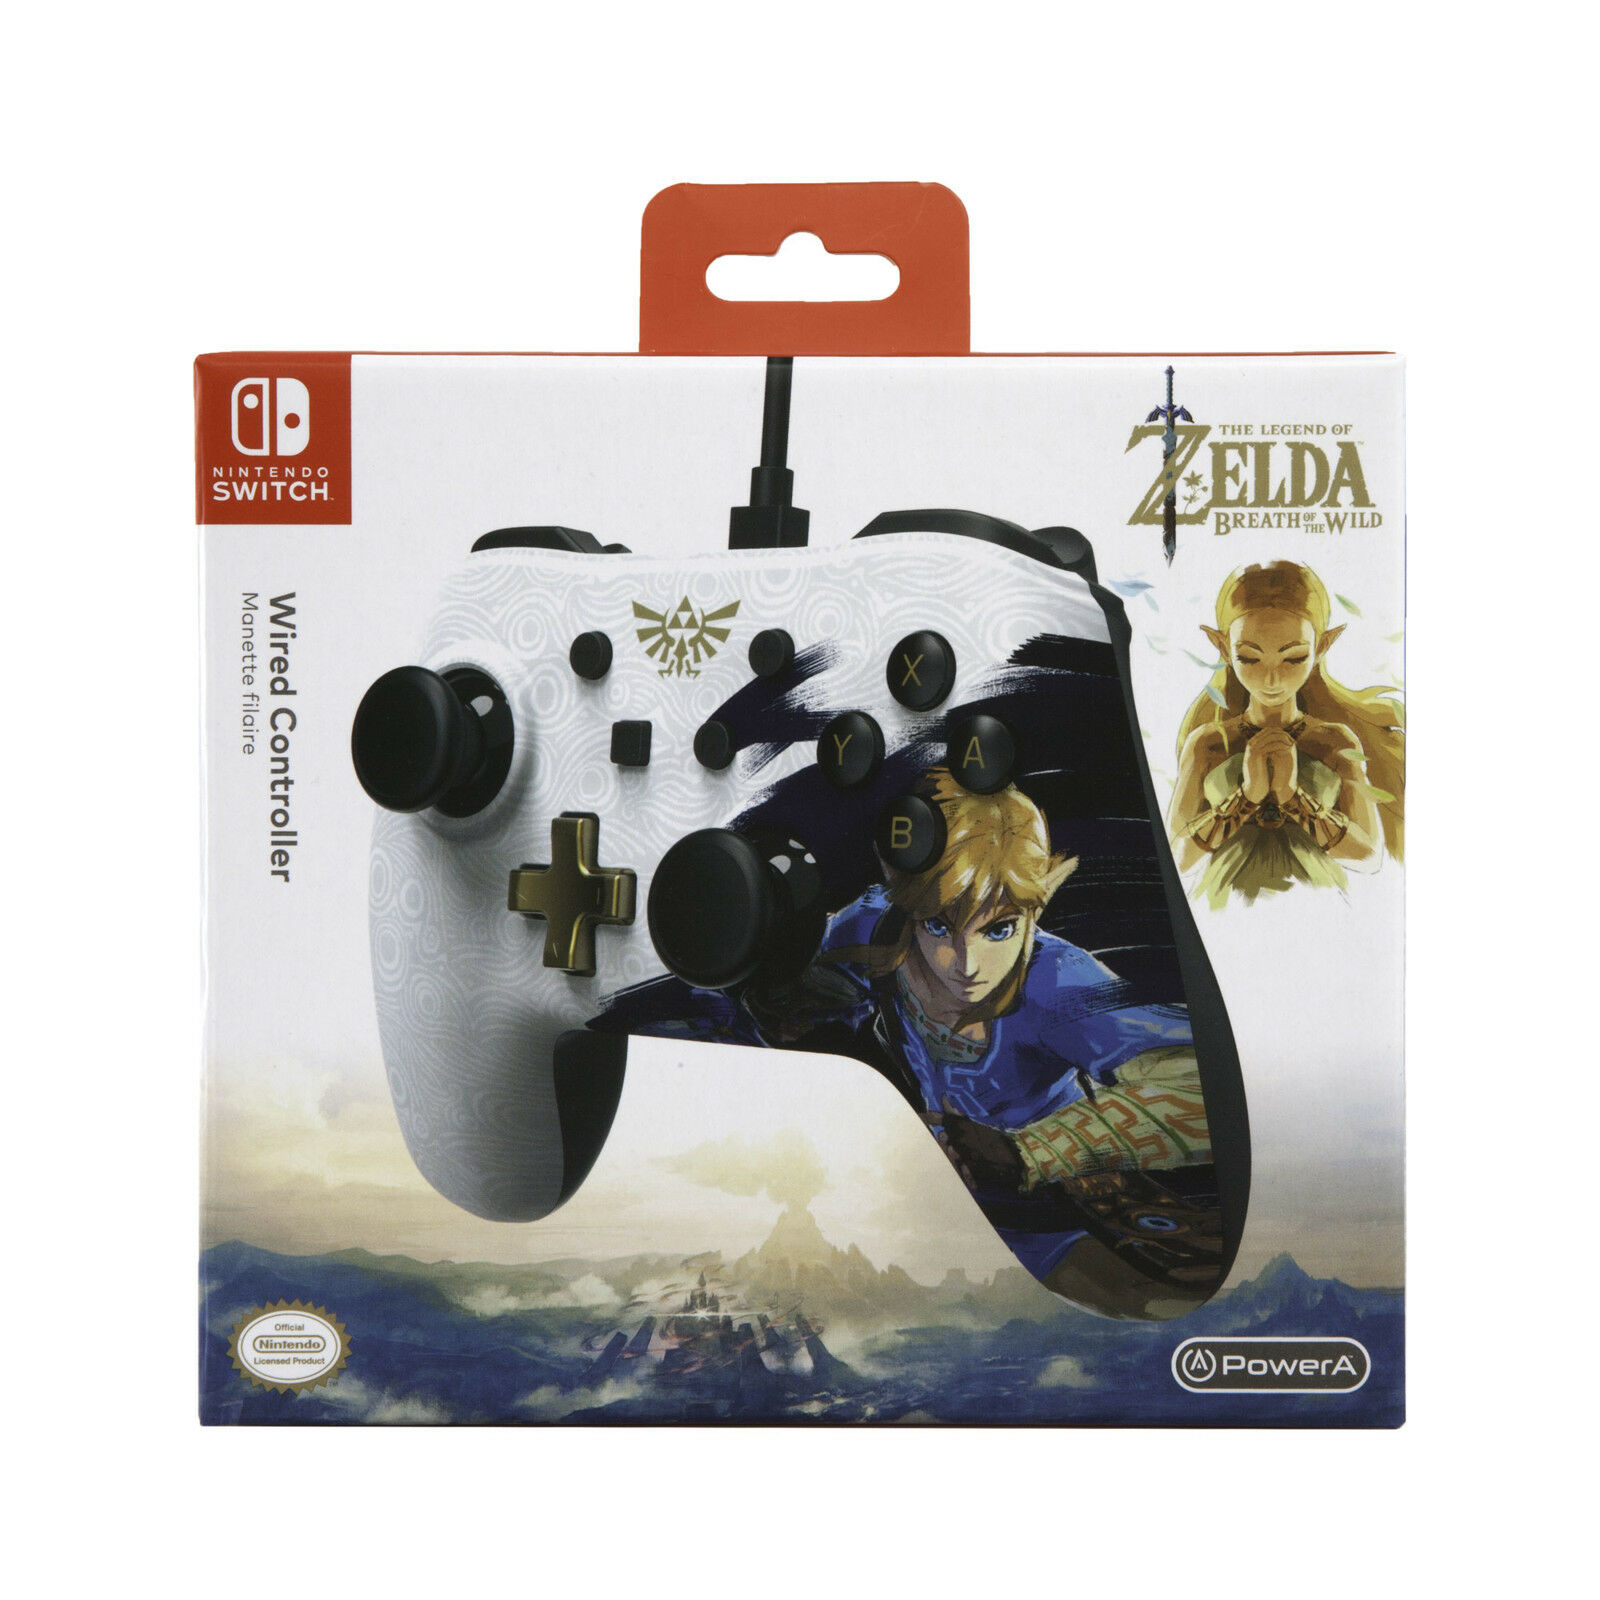 Details about PowerA Wired Controller 8ft USB Cable for Nintendo Switch -  Legend of Zelda